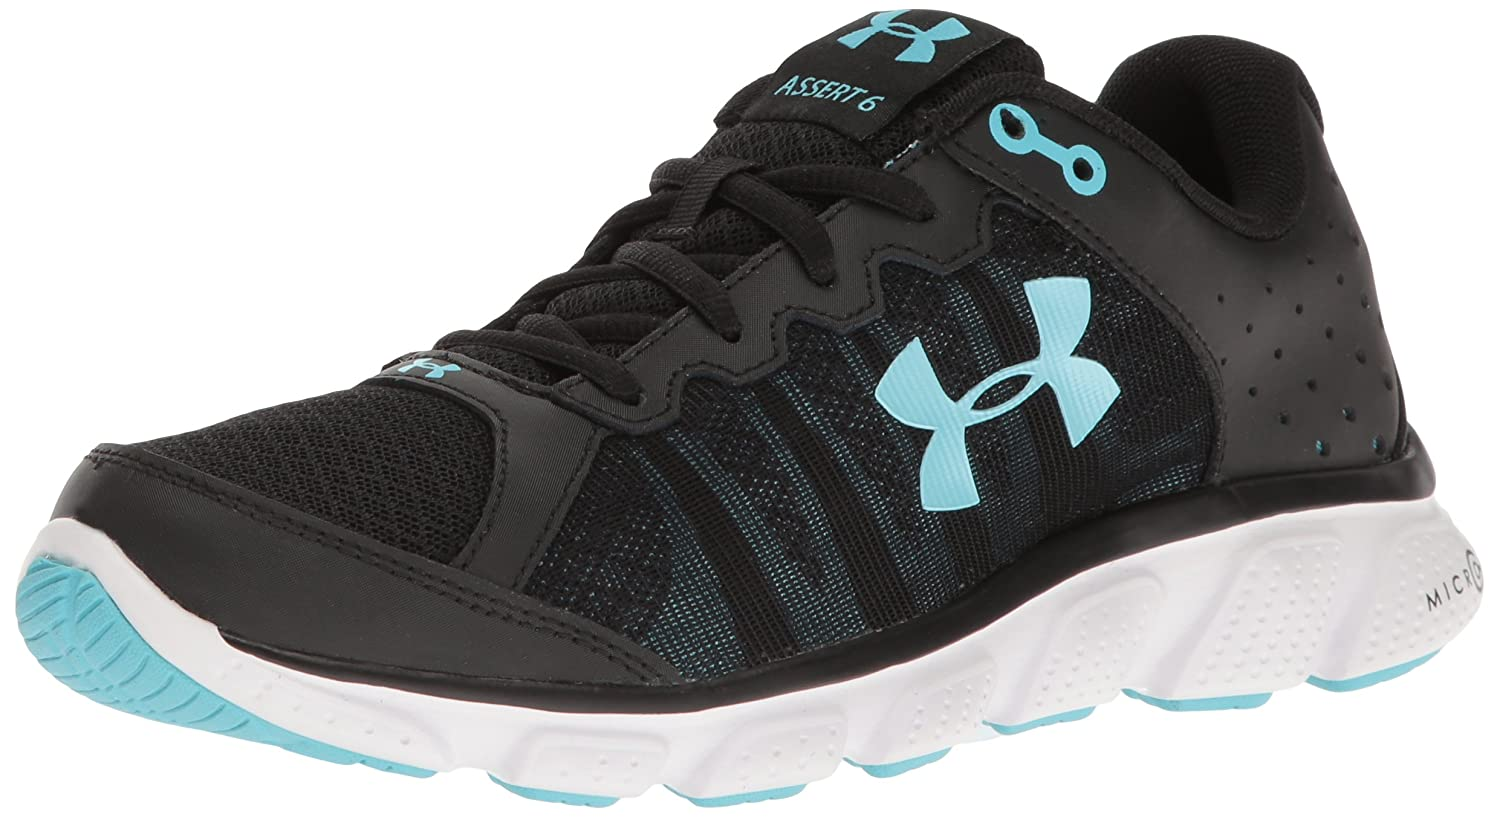 Under Armour Women's Micro G Assert 6 Running Shoe B01GPMGCV2 7 M US|Black (004)/White